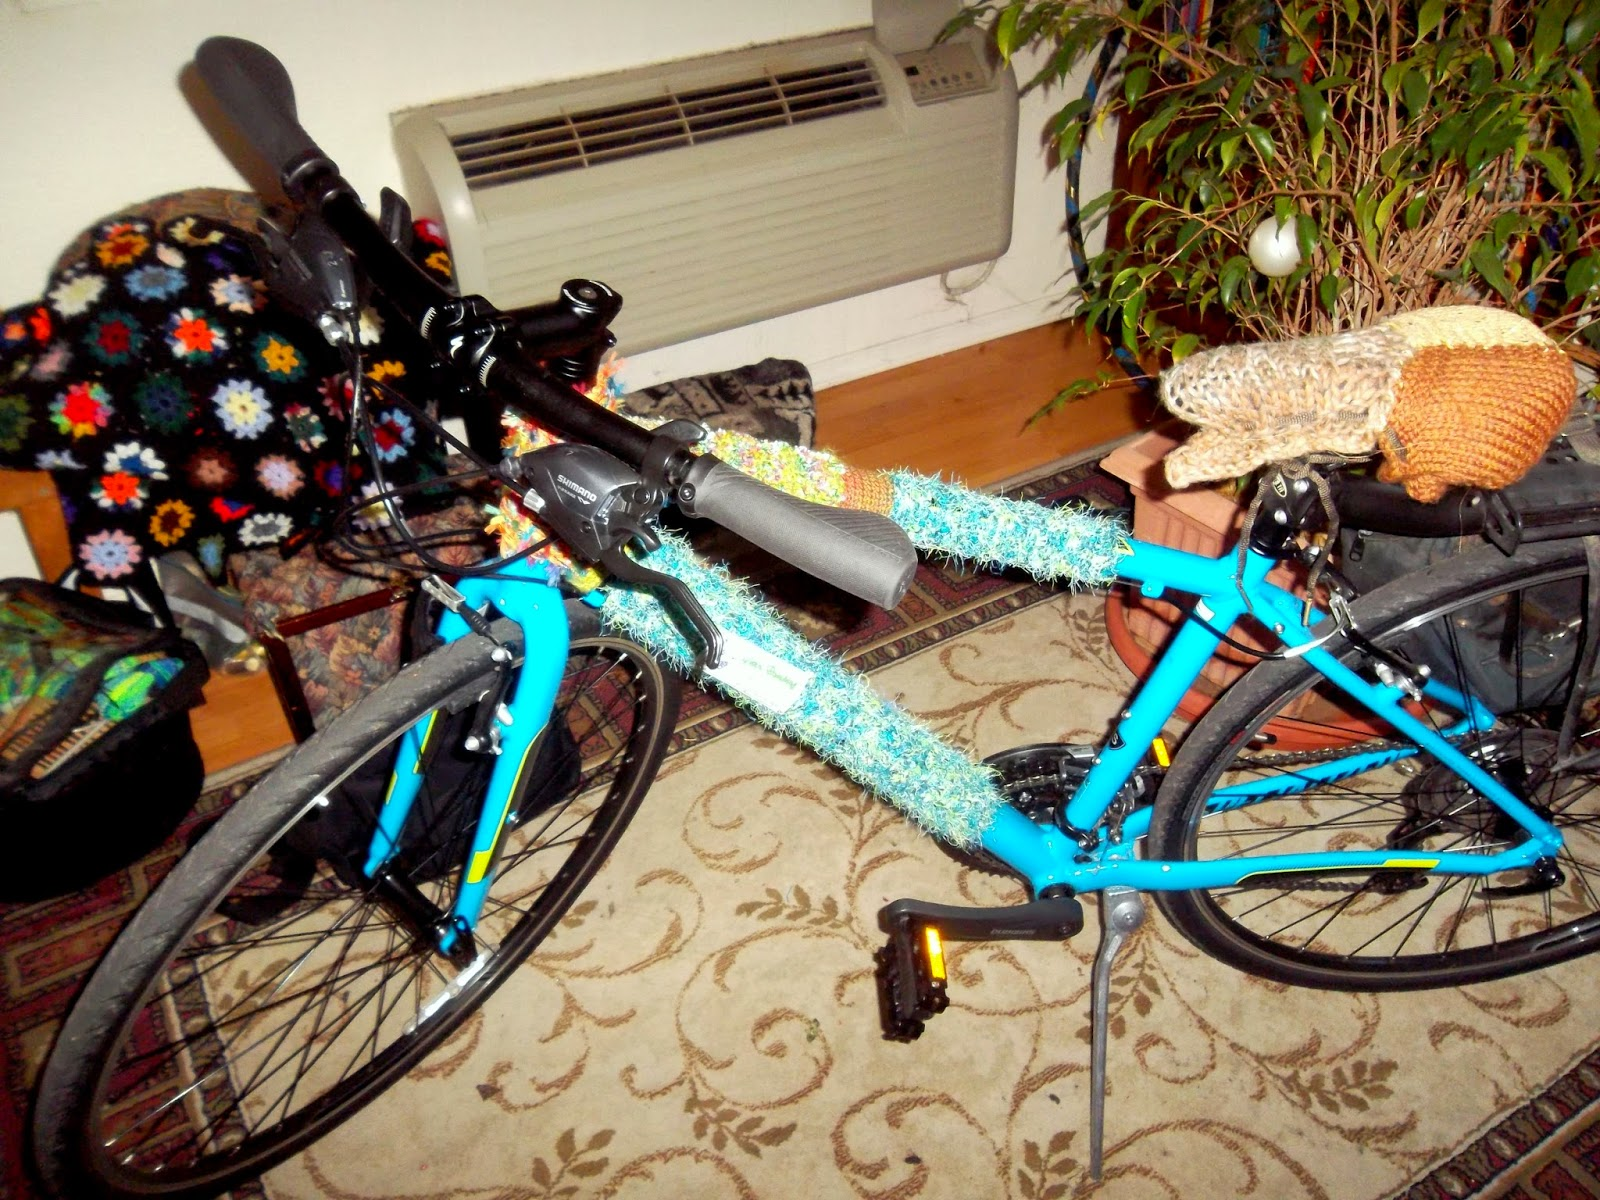 Bright teal-blue, diamond framed bicycle, with yarn bombing tags around the top tube, head tube and down tube of the frame. Knit swatches assembled into a seat-cover are tied over the bicycle seat.